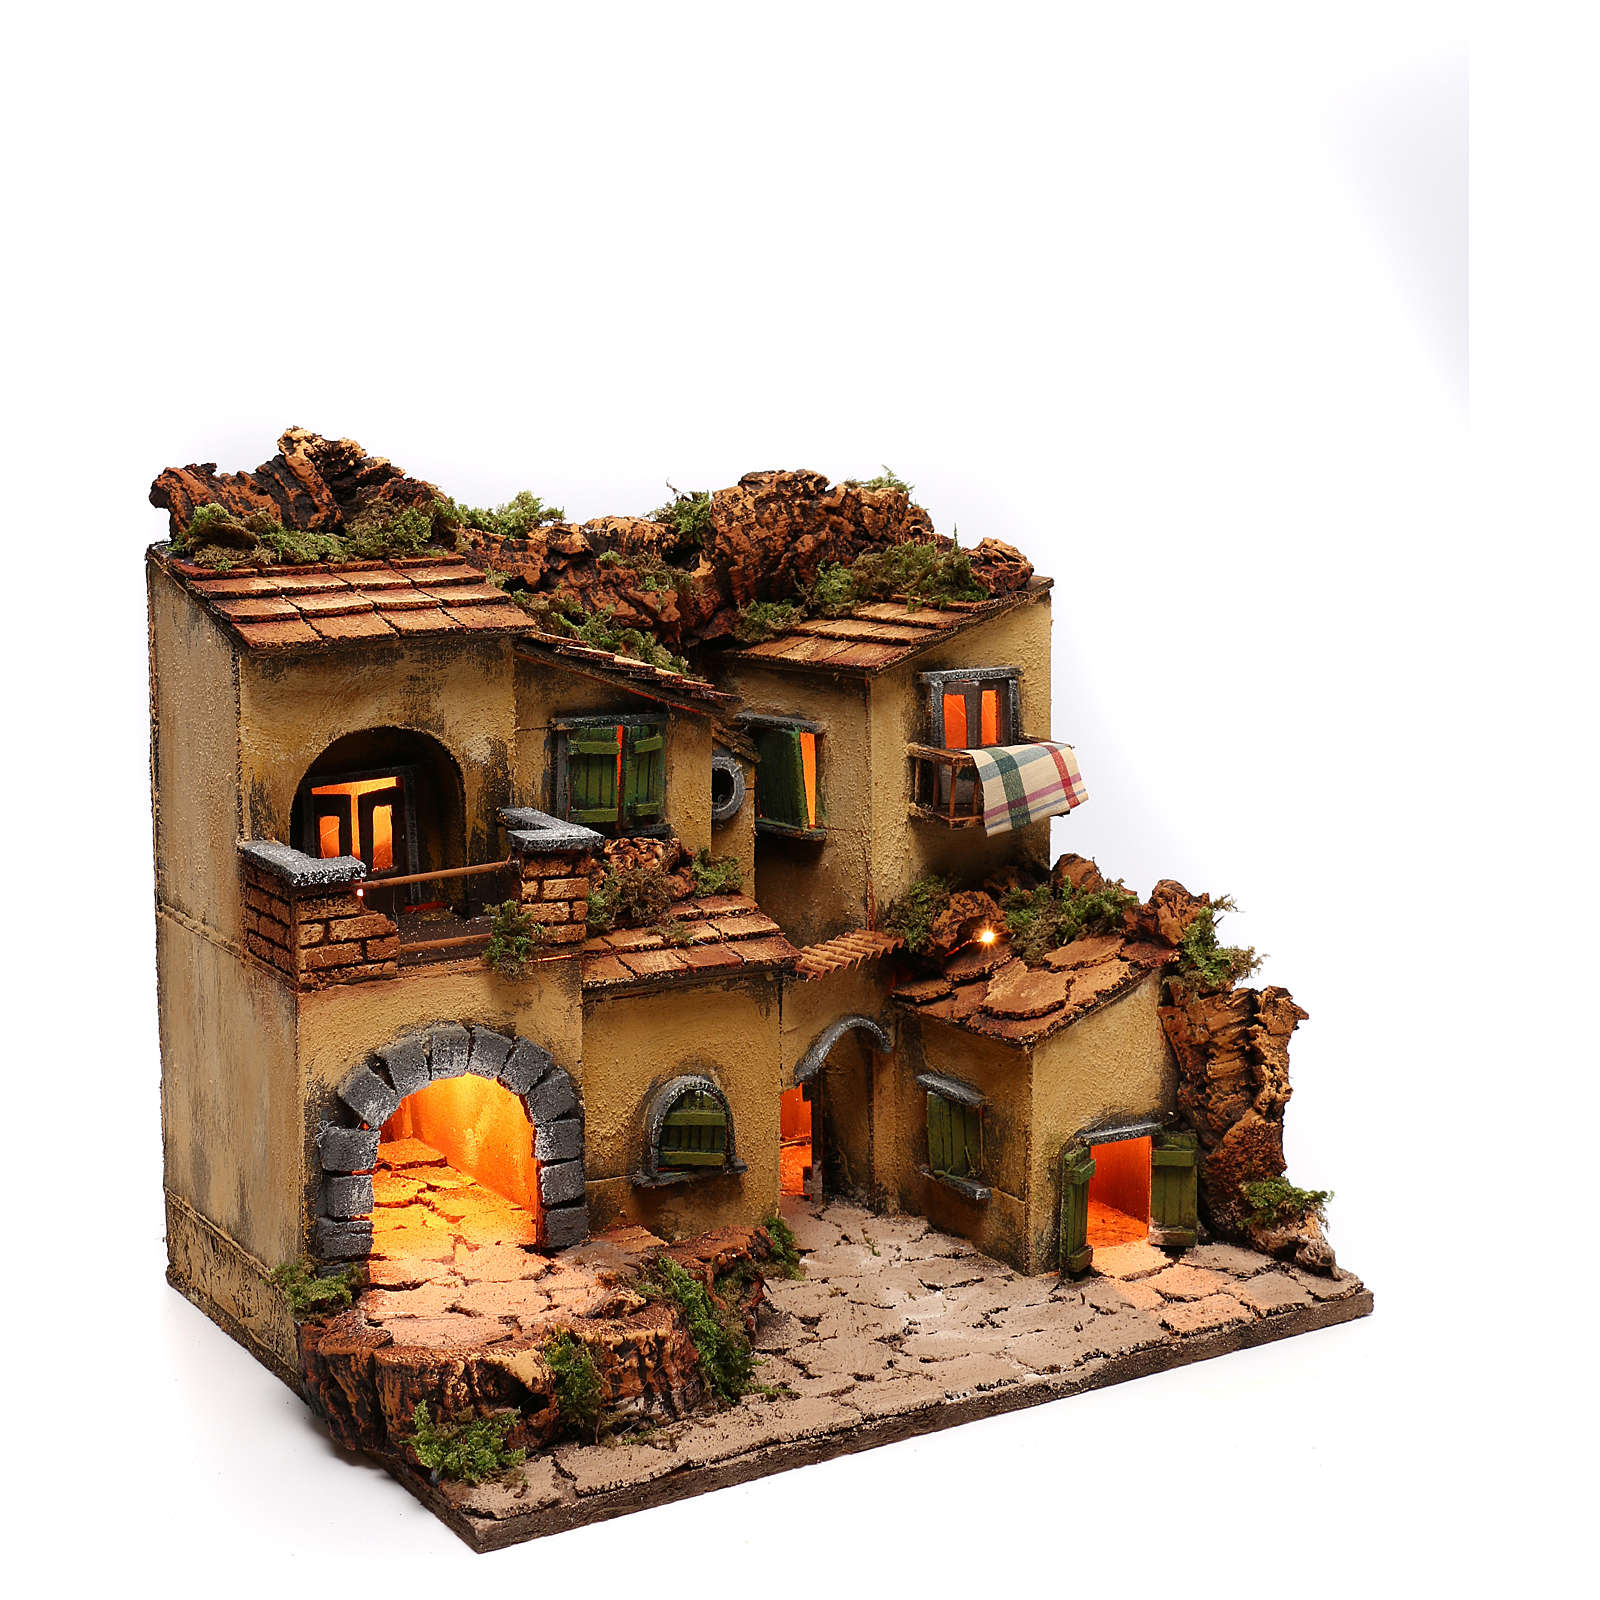 Neapolitan Nativity Village, 1700 45x35x33cm 4